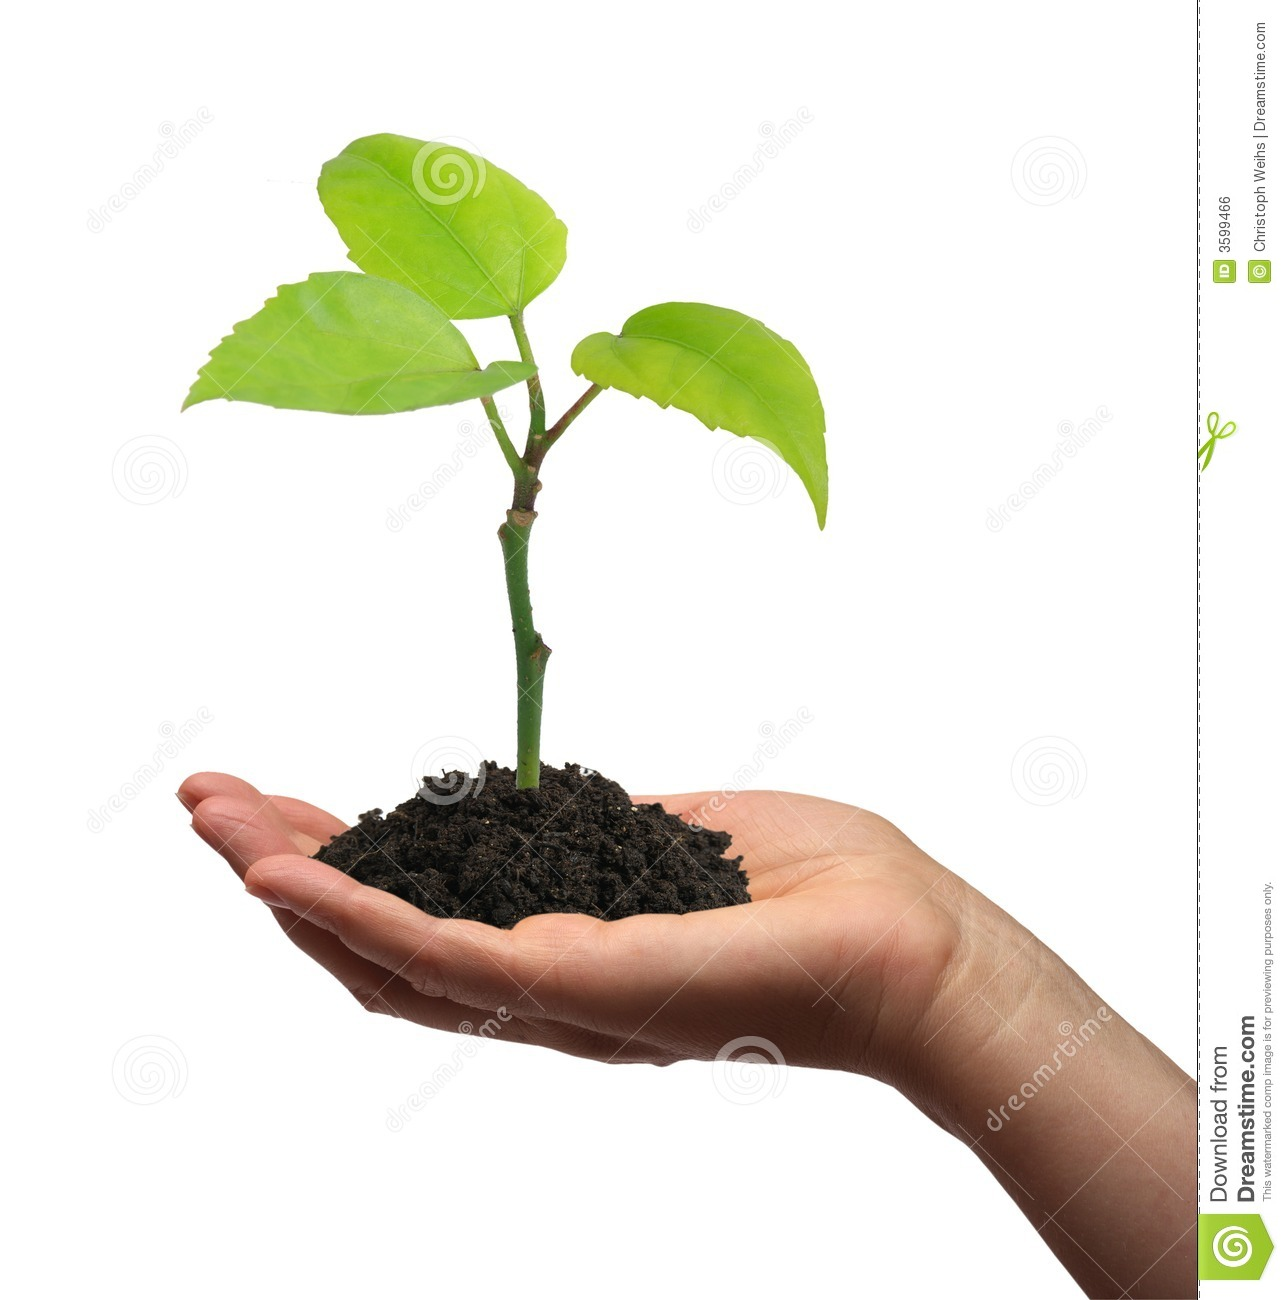 Royalty free plant images jpg black and white stock Royalty free plant images - ClipartFest jpg black and white stock